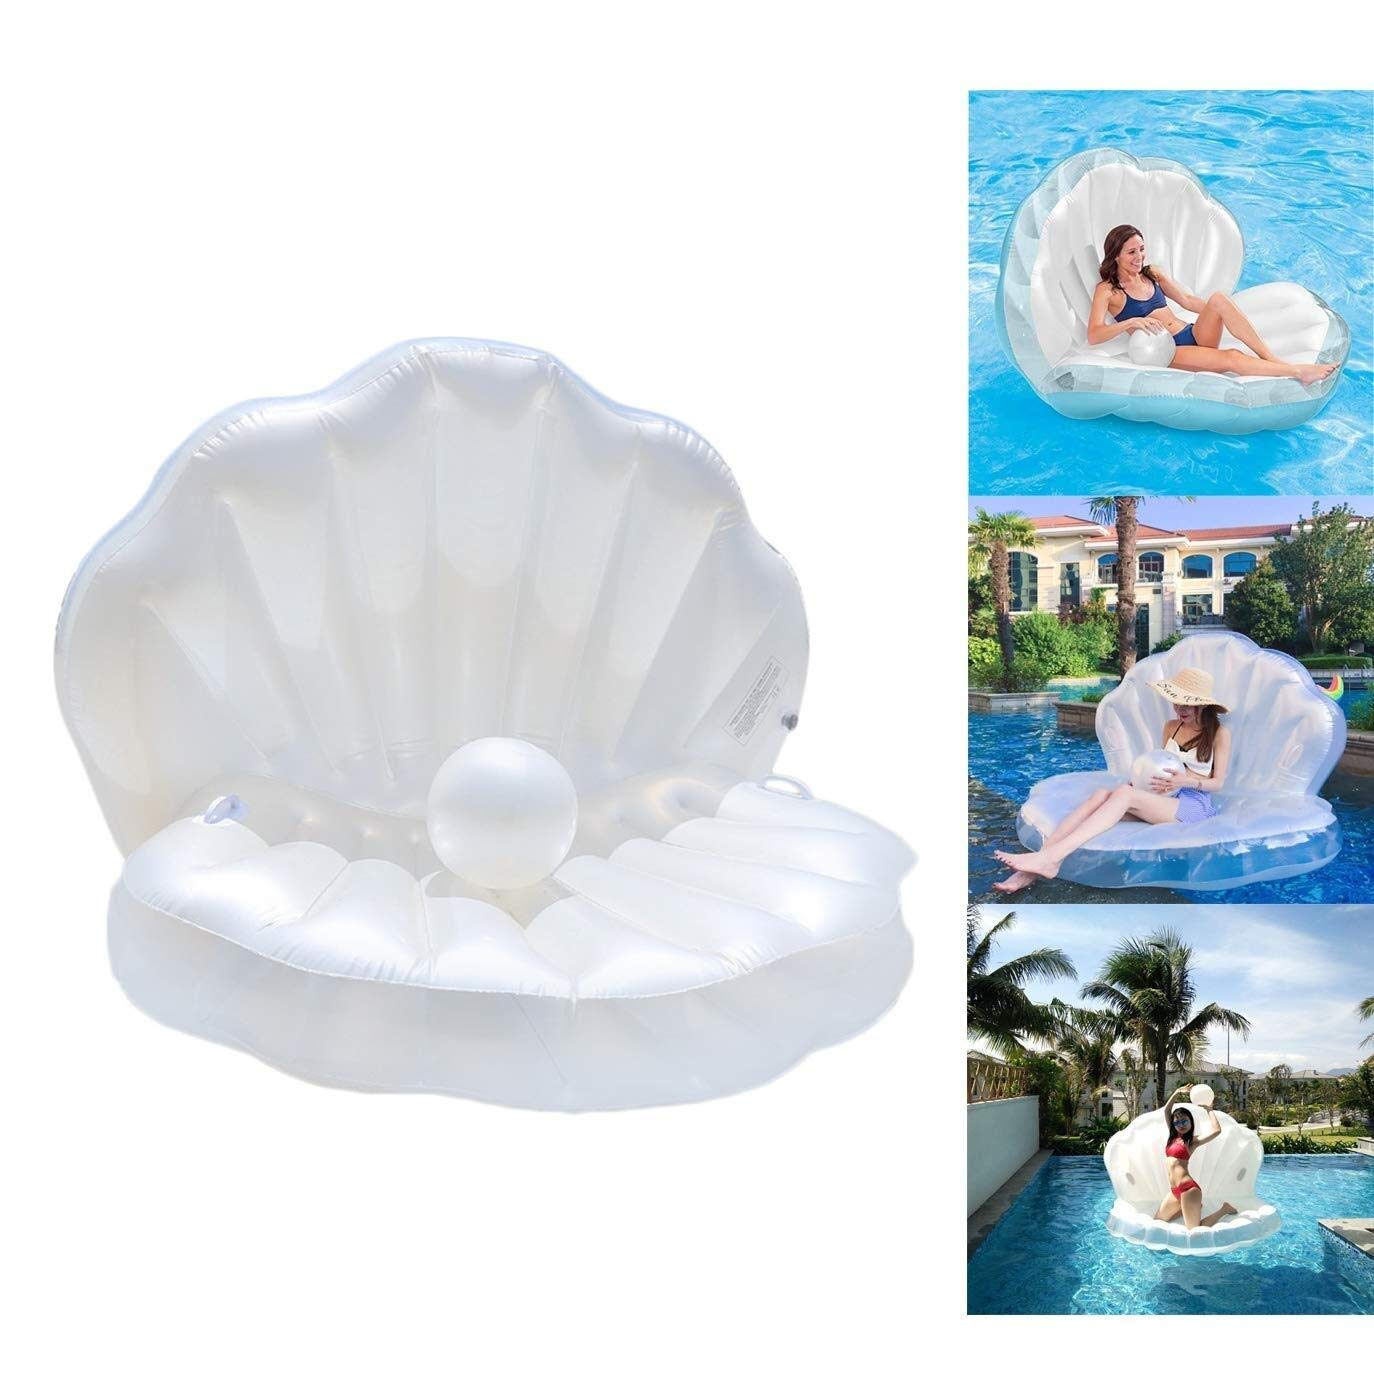 Amazon.com : MQW Swimming Pool Float, Inflatable Swimming ...